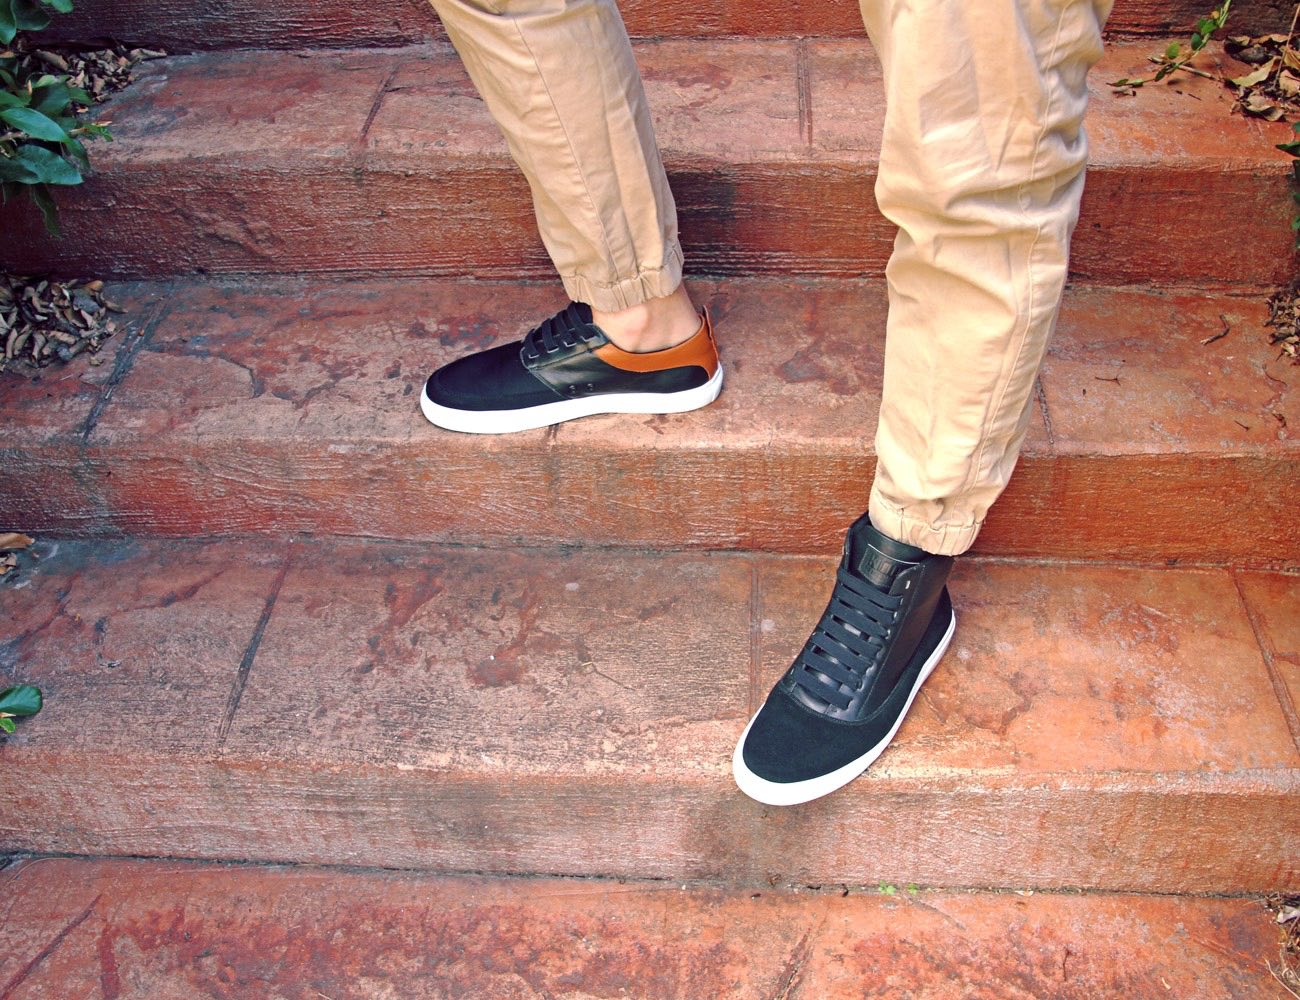 Stretch-Lacing Technology Meets Luxury Fashion